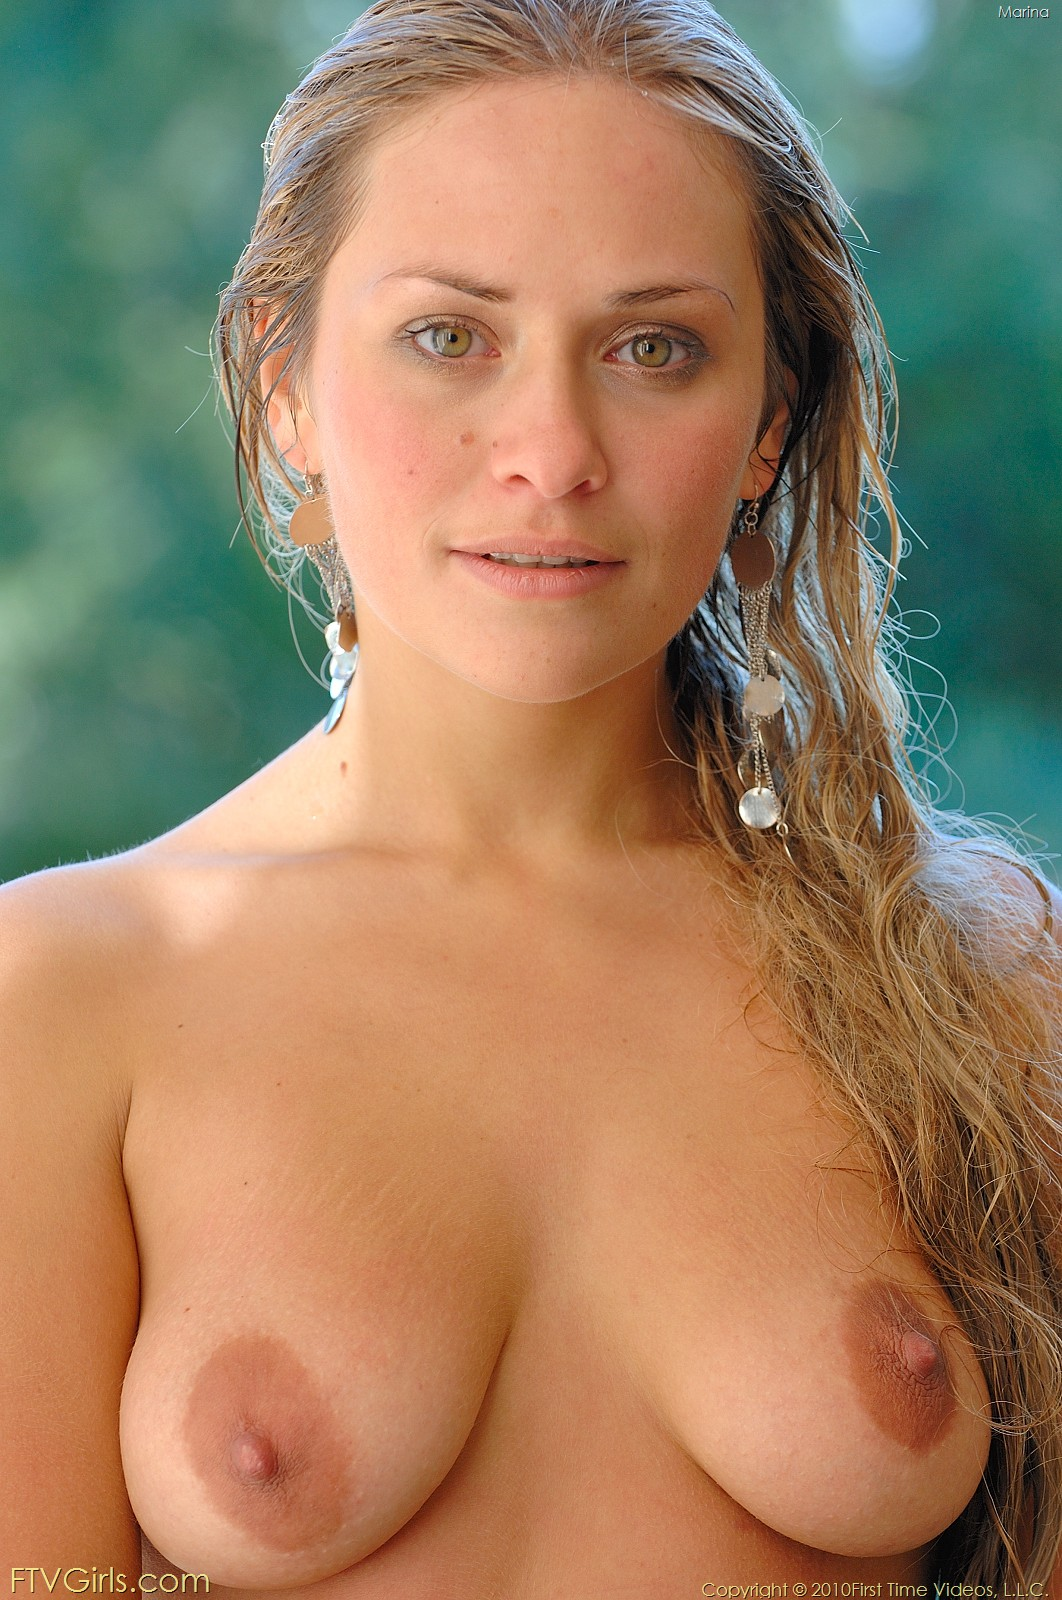 Natural female breast photo